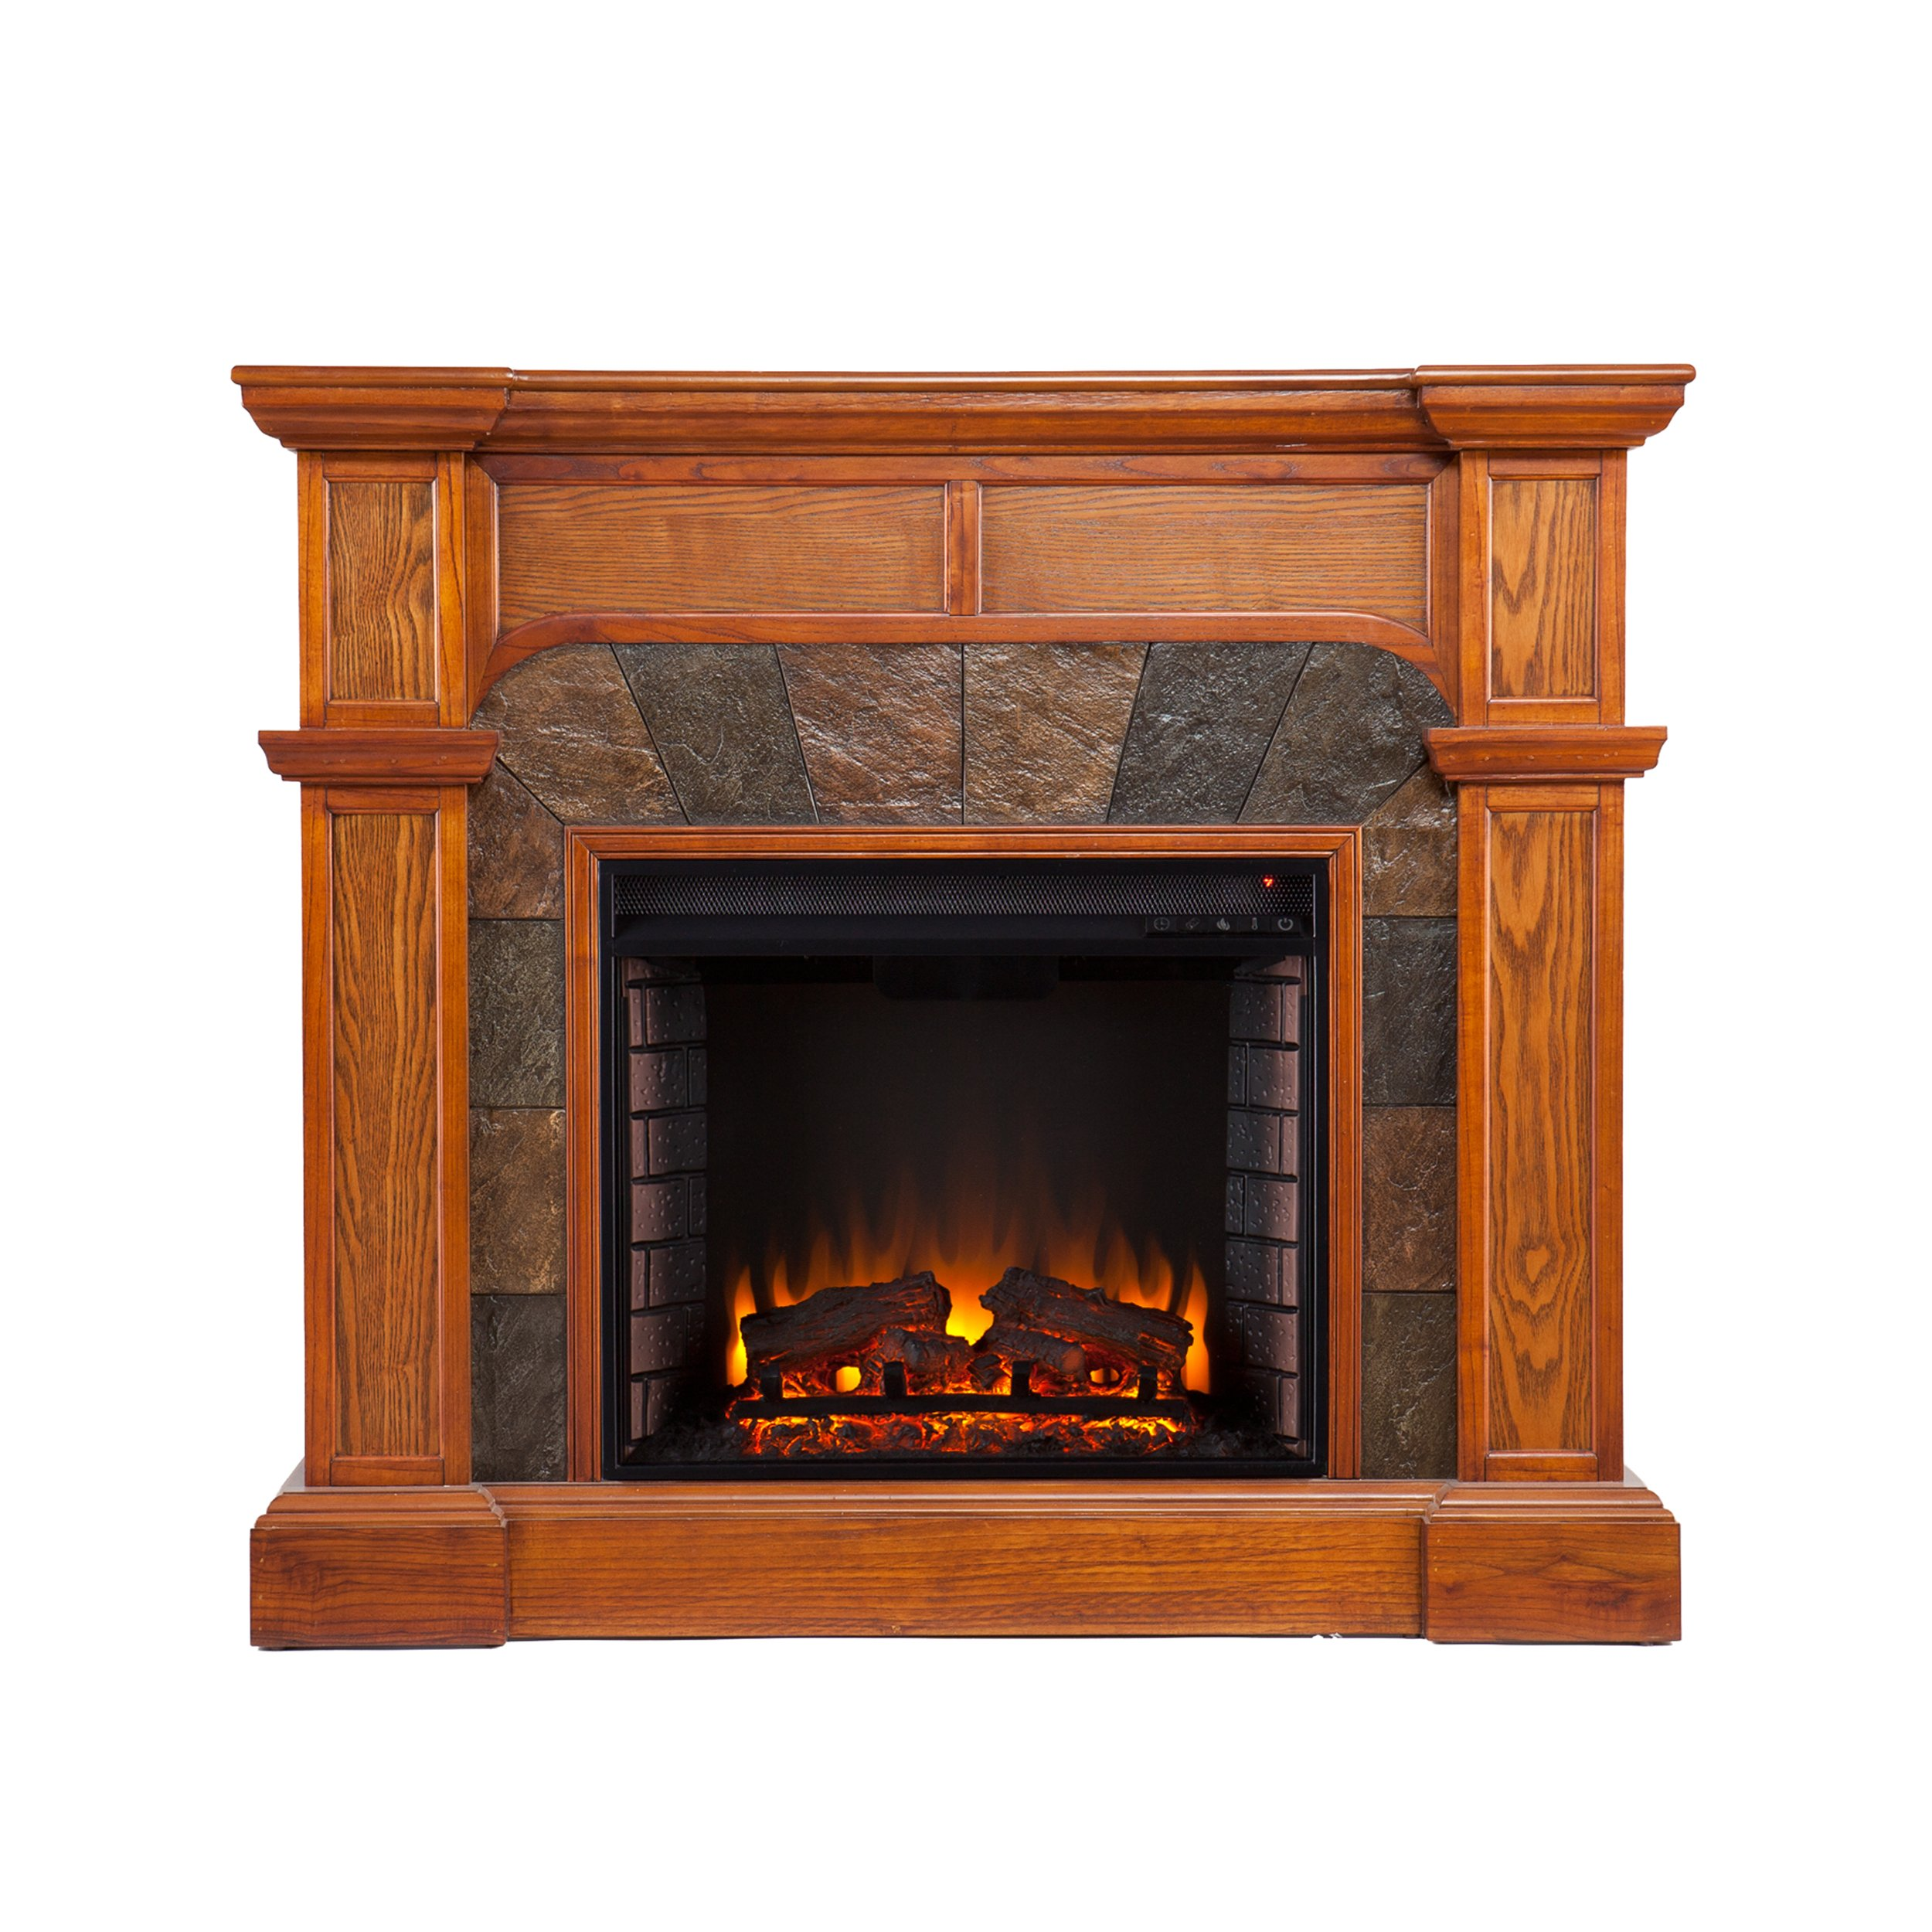 patio bistrodre modern exteriors turn fake insert fireplace ideas and inside amazon porch outdoor electric the eyecatching build fireplaces landscape